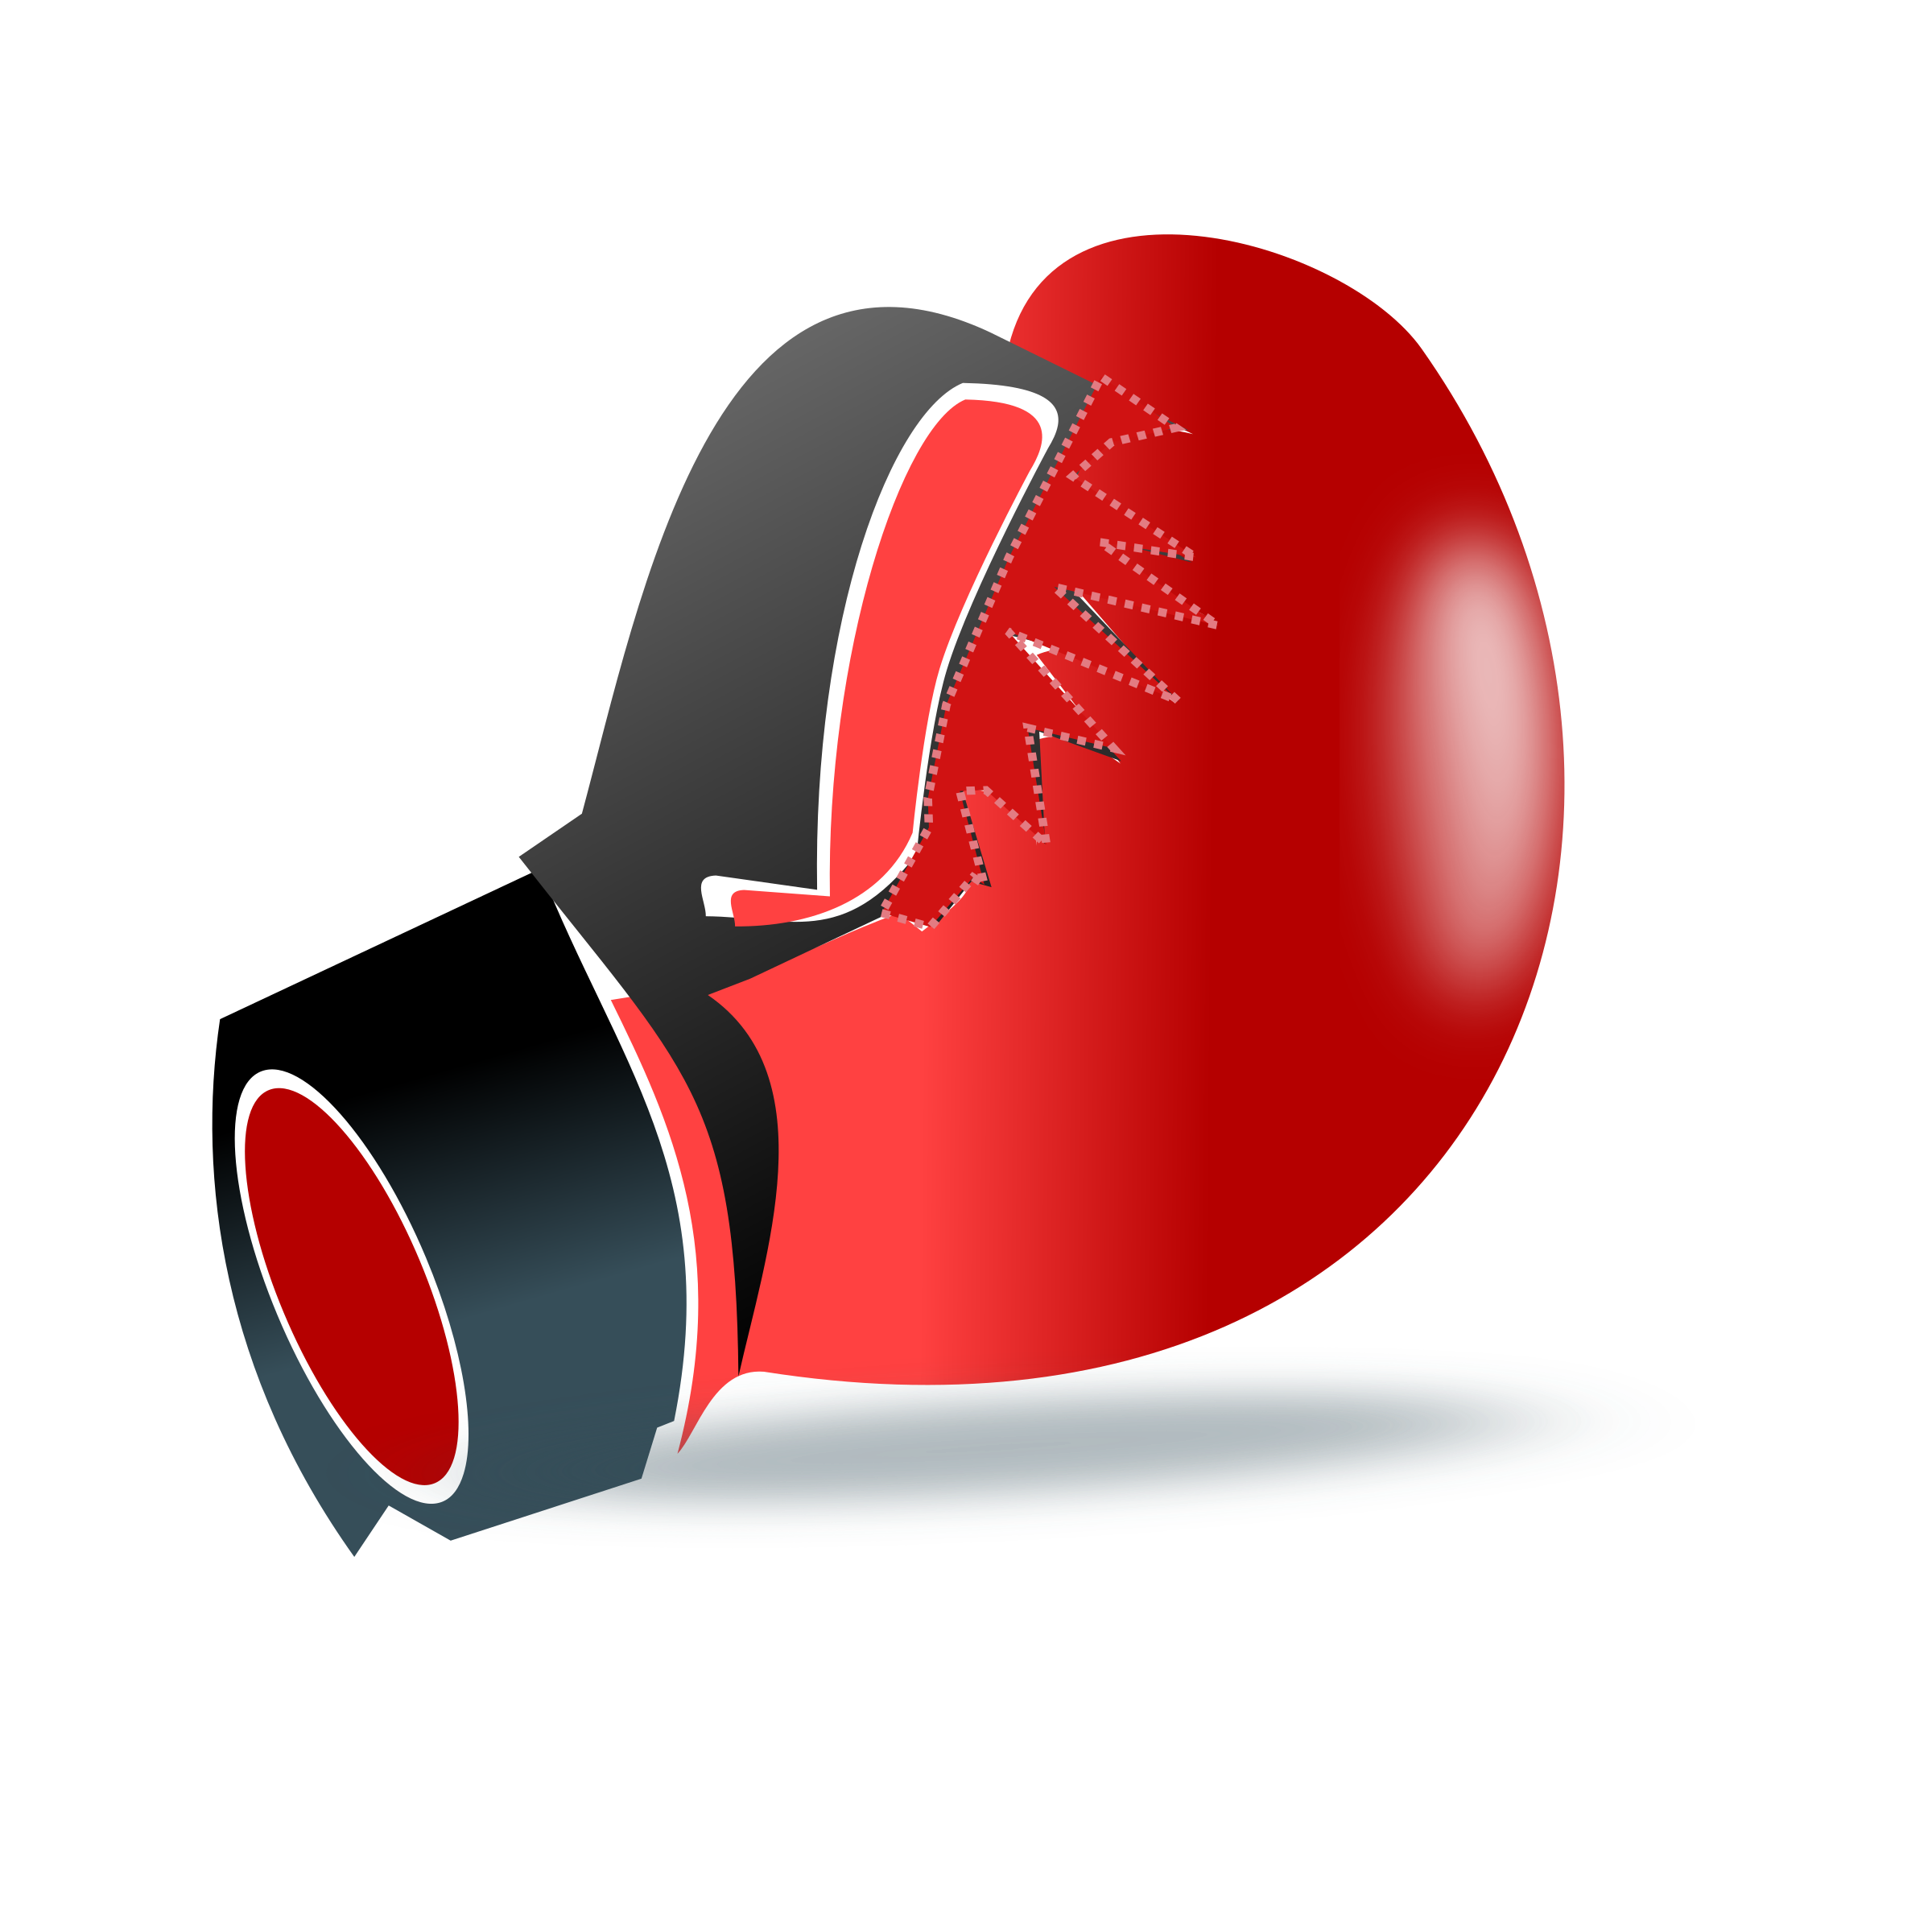 Clipart - Boxing glove